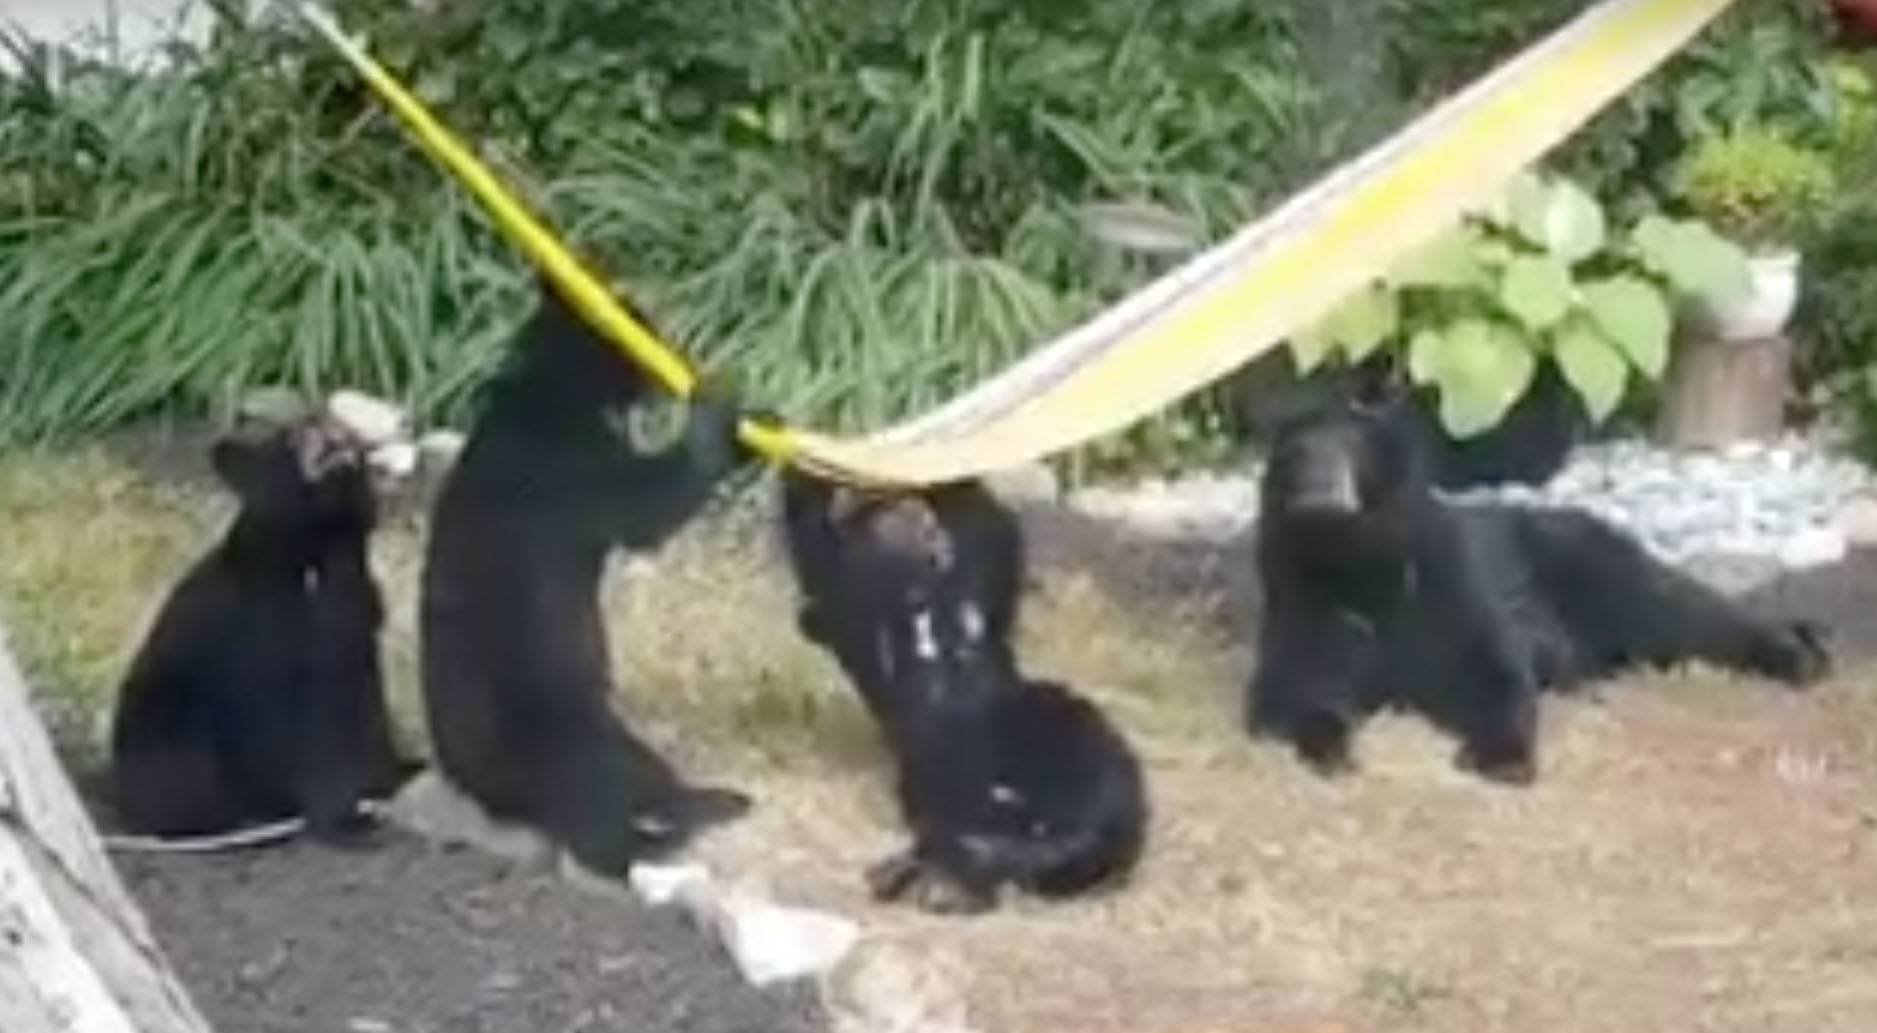 Black bears cubs flummoxed by hammock in Gibsons, BC